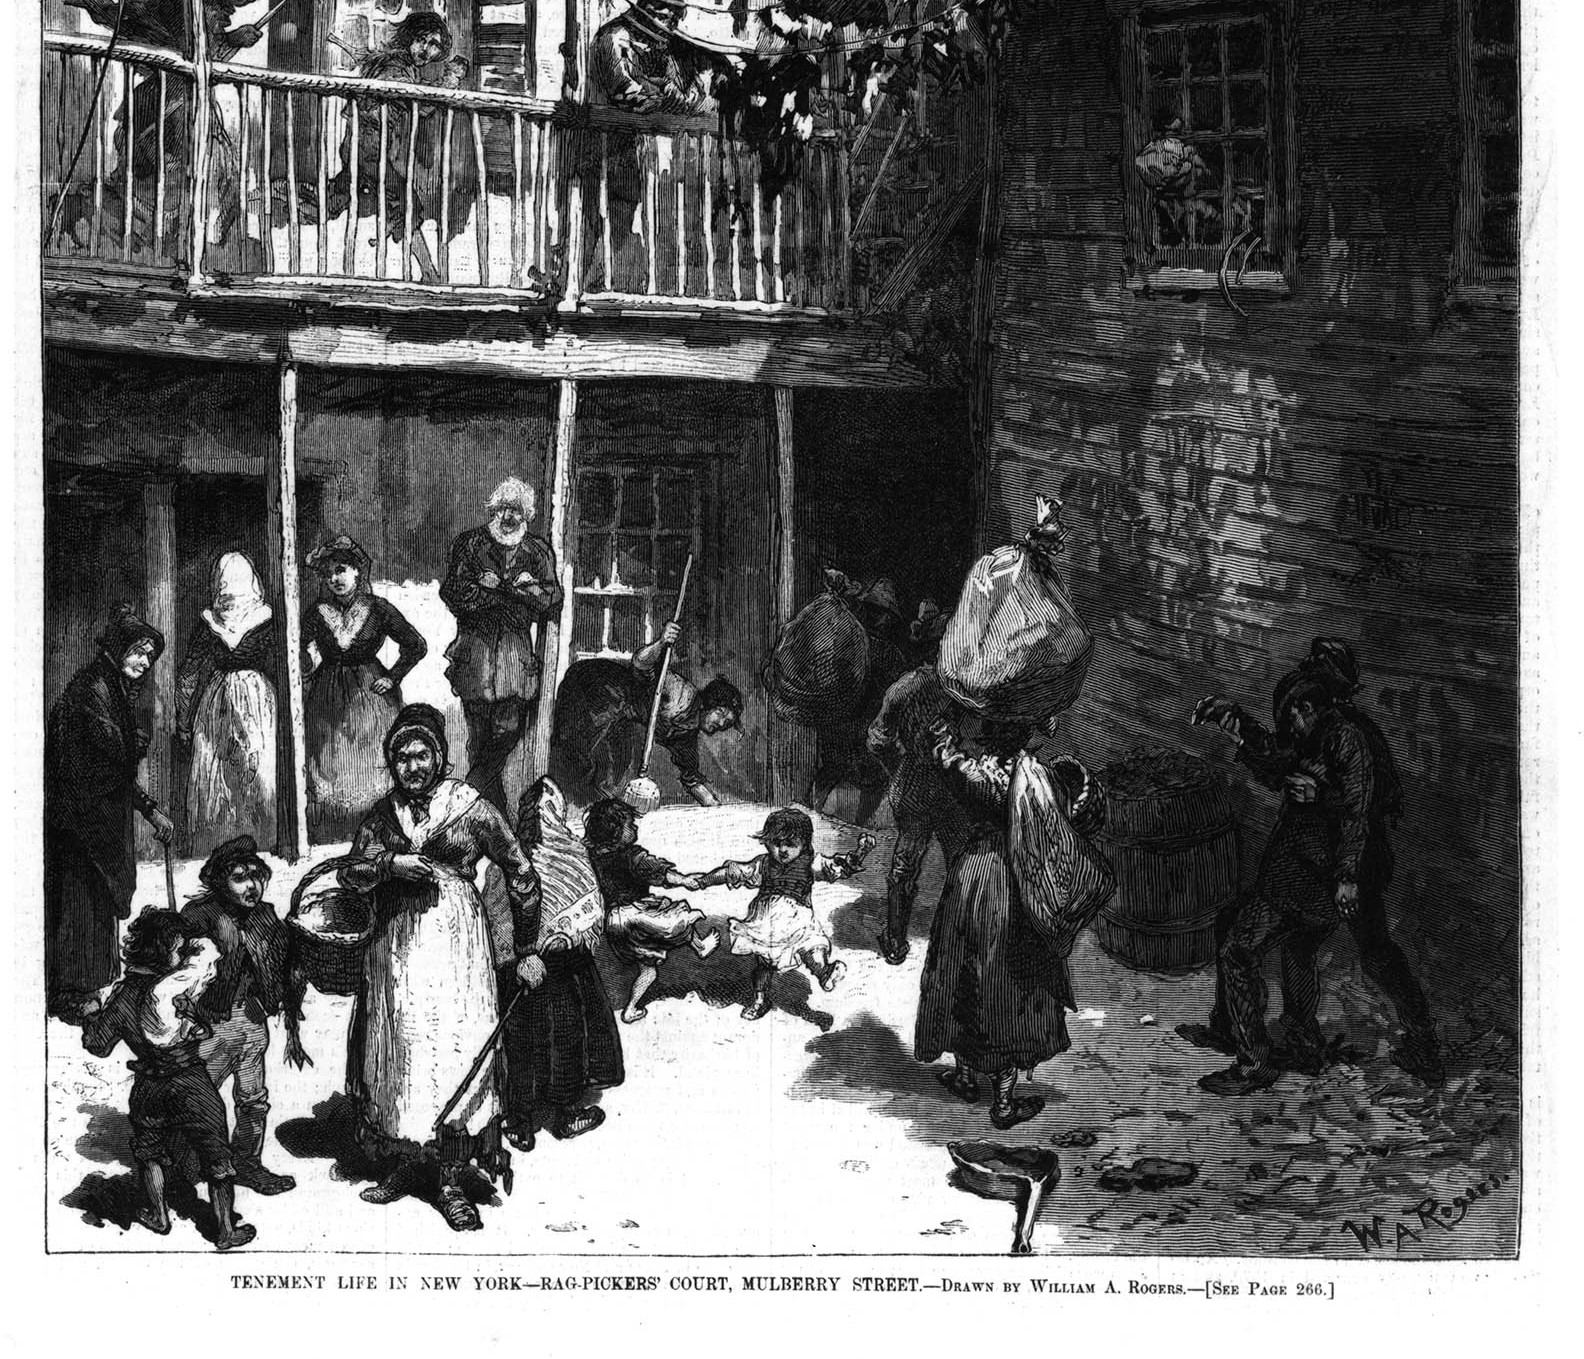 Men, women, and children all of different ages gathered in a small common outdoor space engaging in daily chores